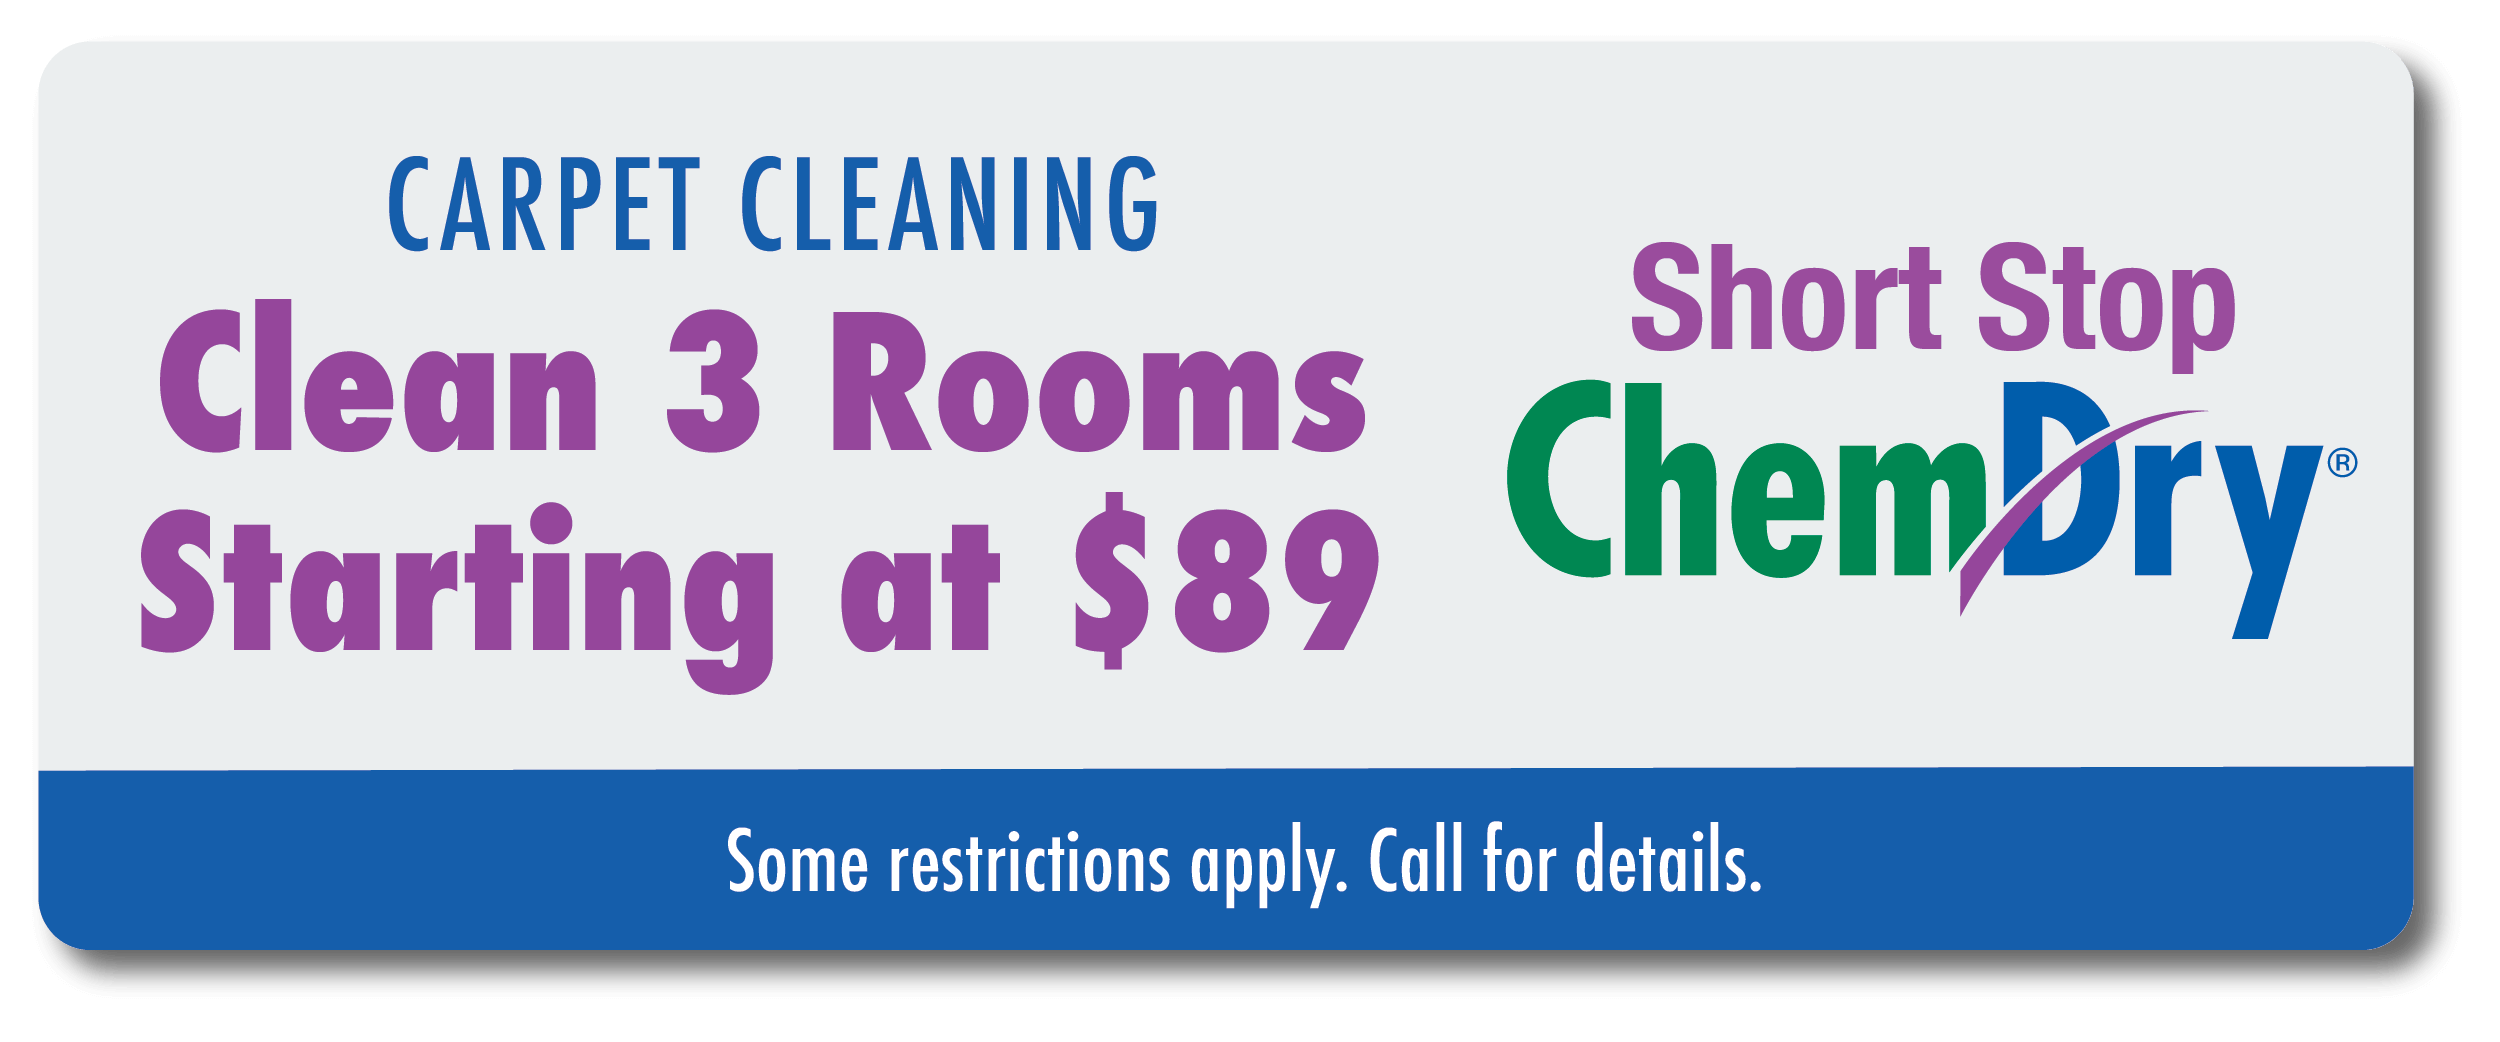 clean 3 rooms starting at $89 coupon